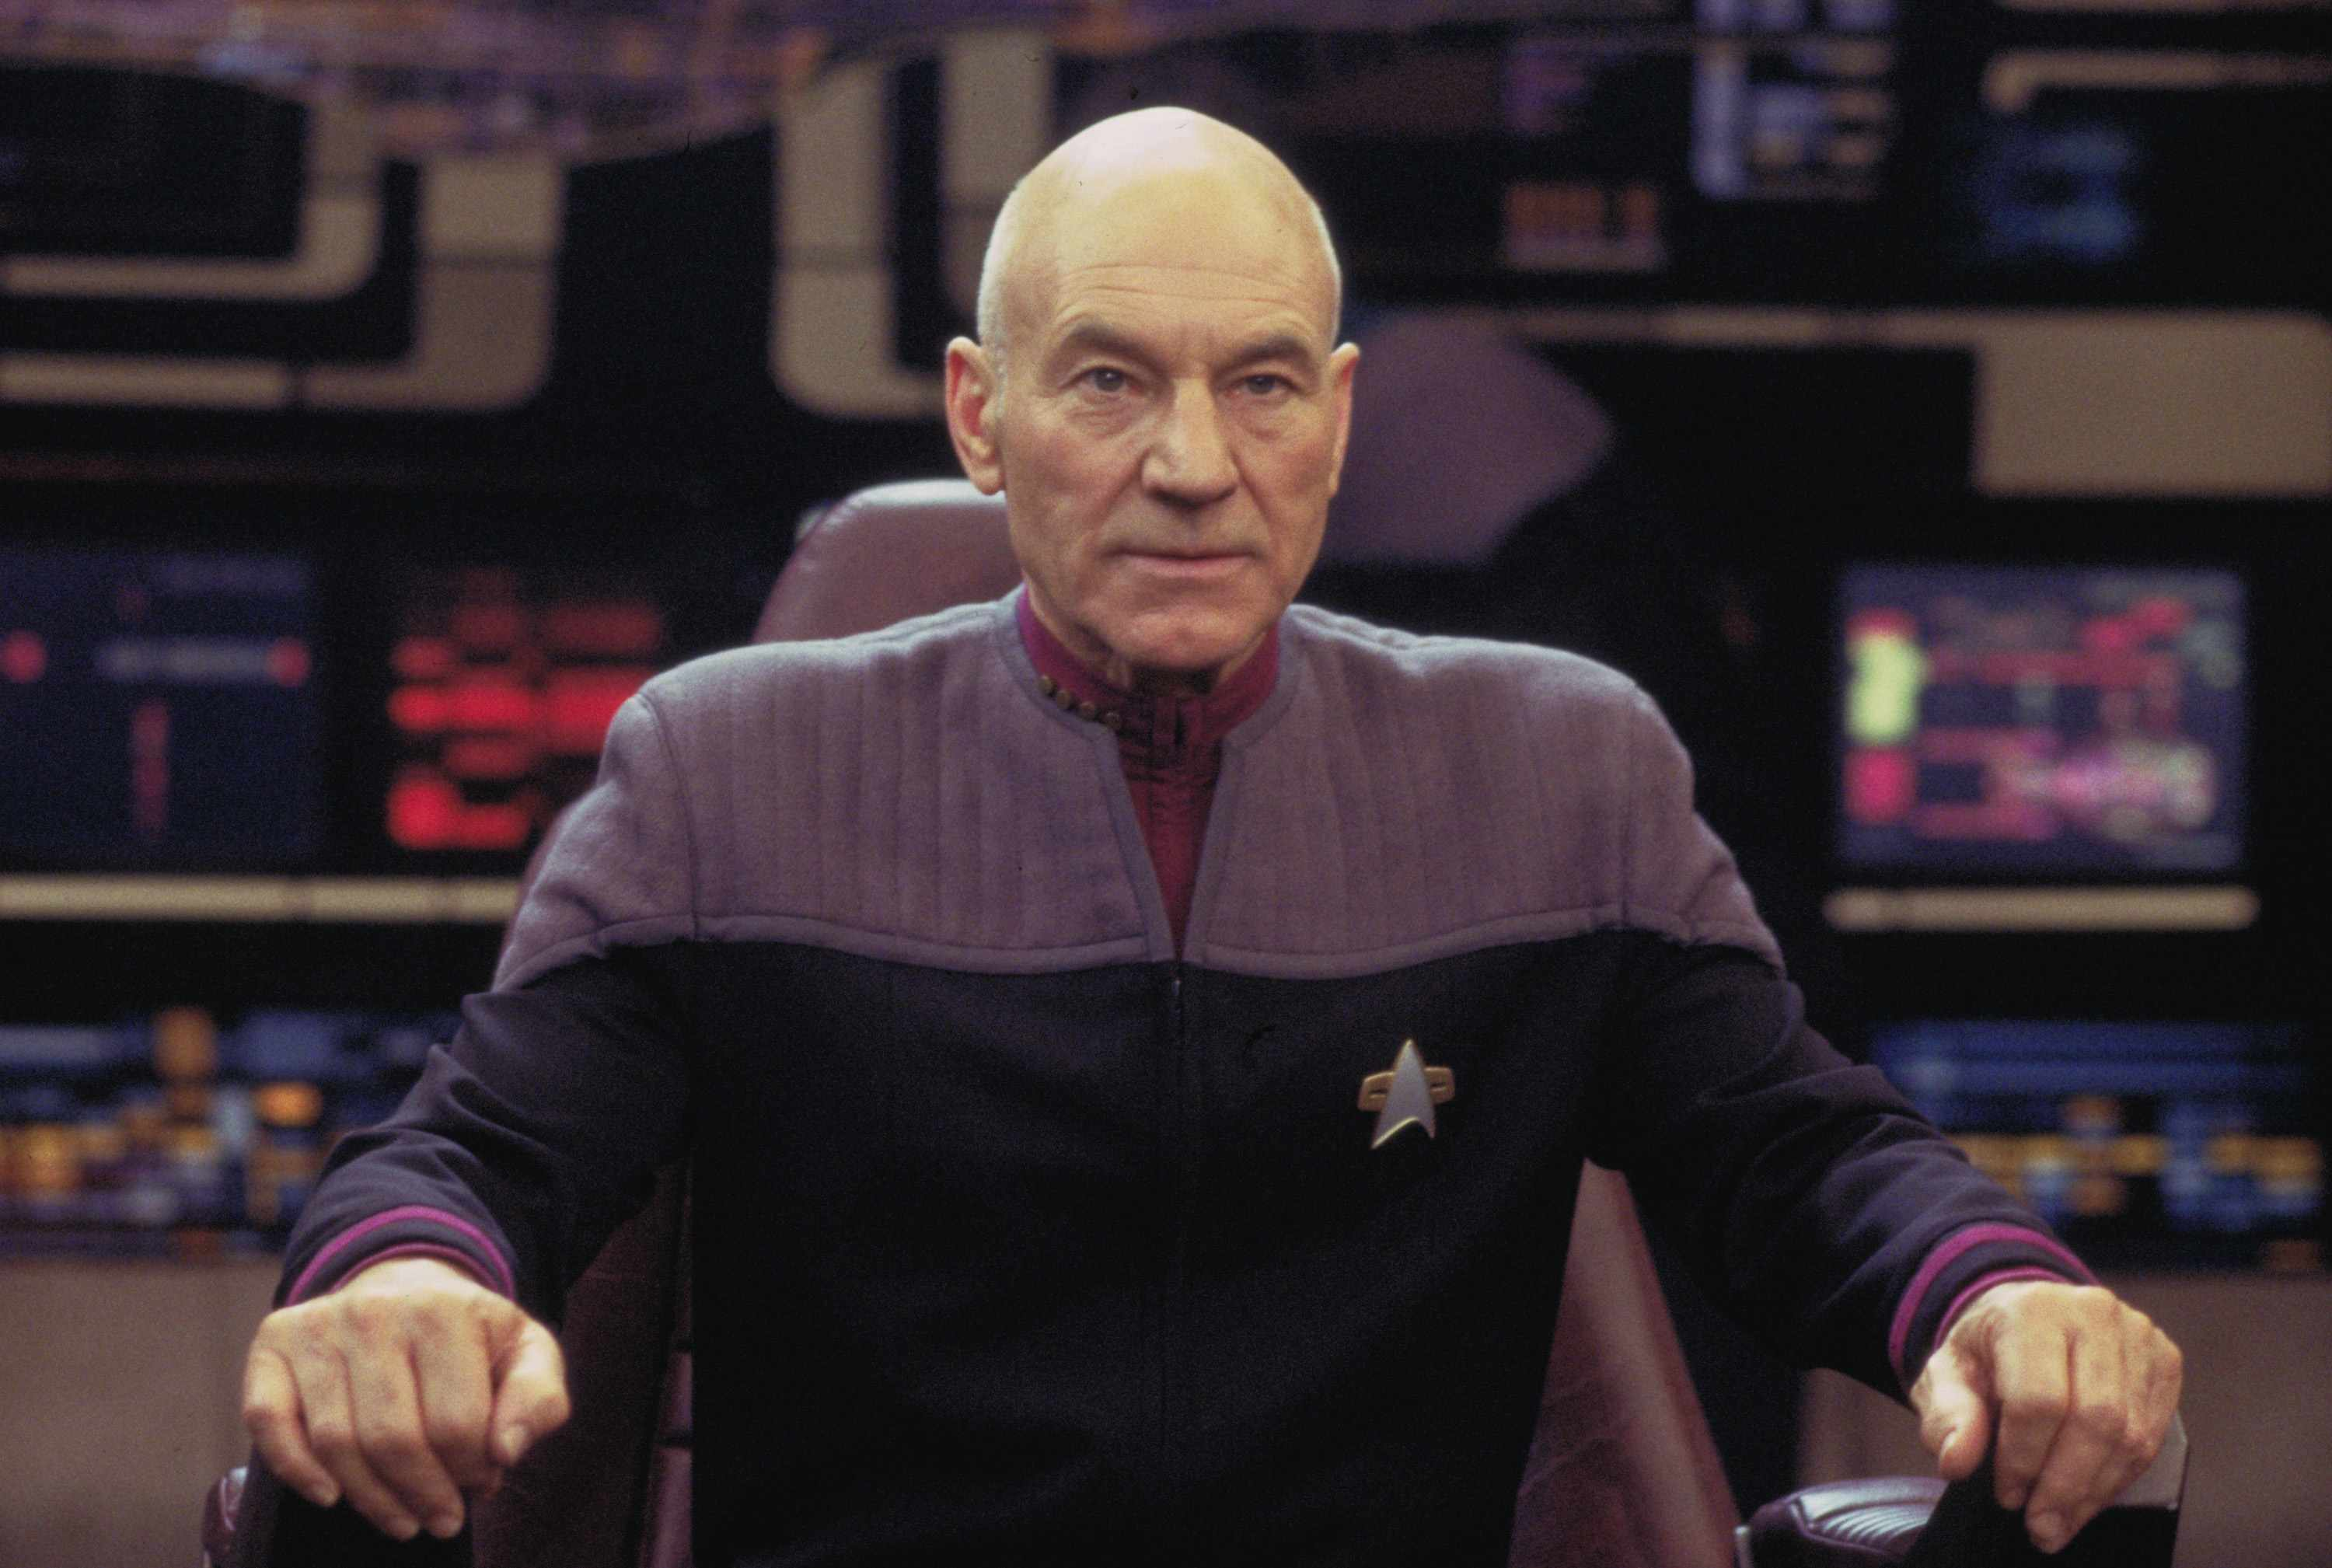 Patrick Stewart as Captain Jean-Luc Picard in Star Trek: Nemesis (Sky, HF)